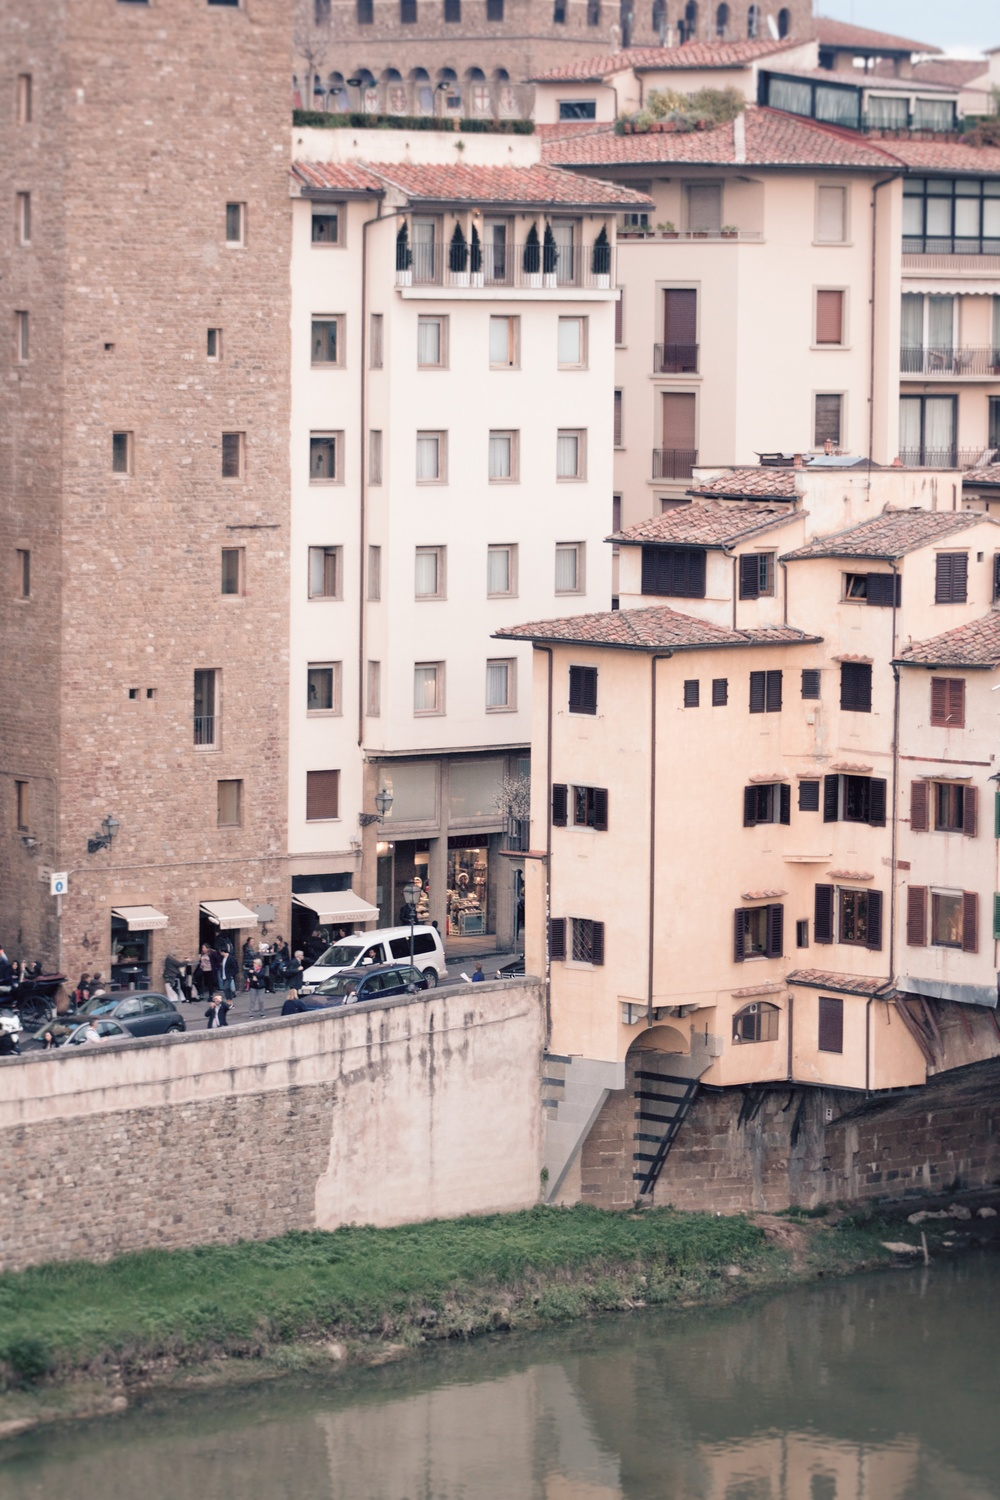 The Continentale is the white building in the middle and the yellow buildings across the street are the windows of the Ponte Vecchio shops